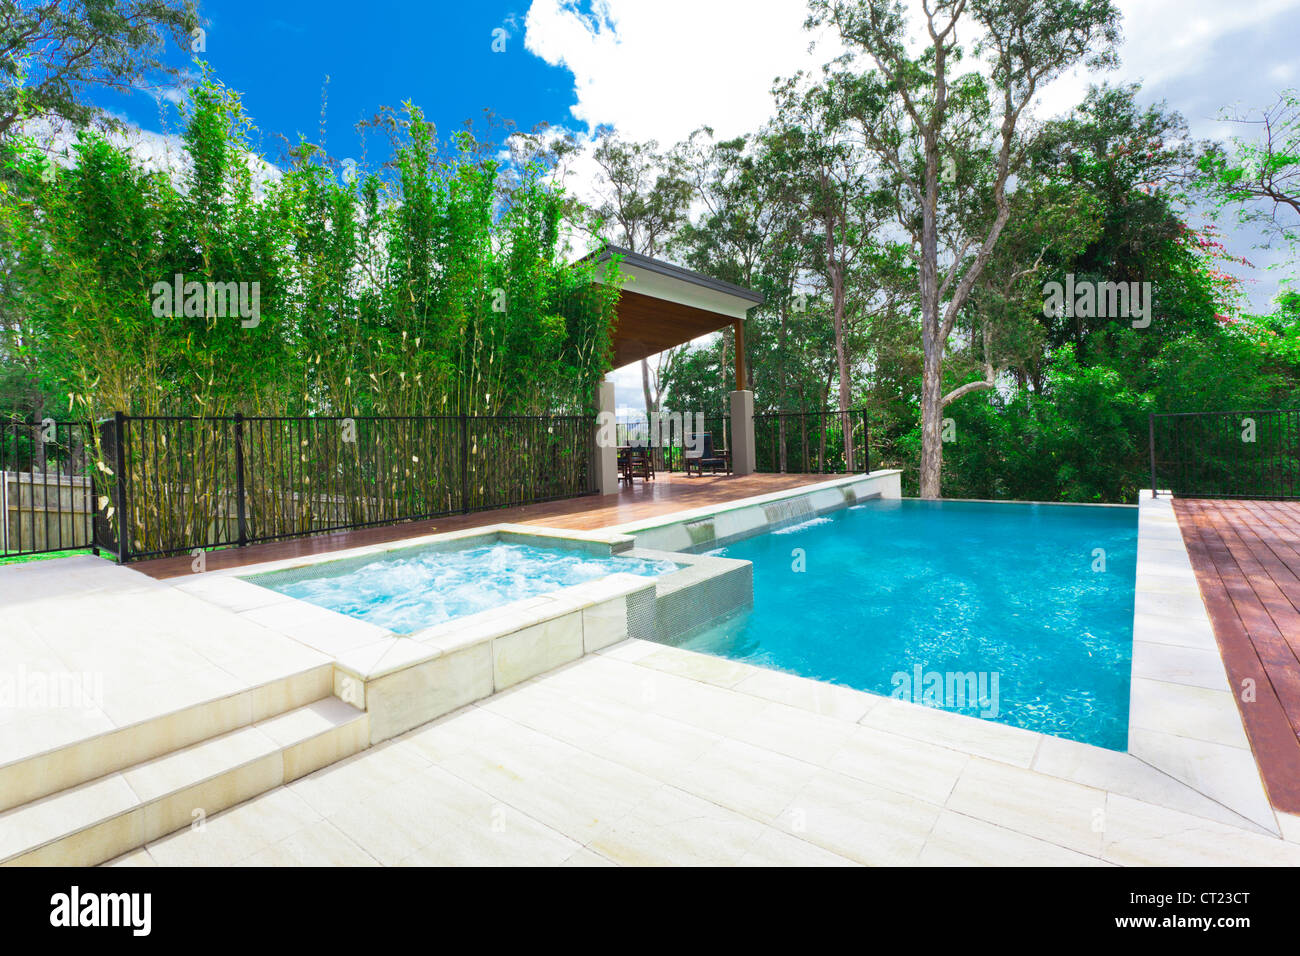 Modern backyard with entertaining area and pool in stylish ... on modern houses with pools, modern rectangle pools, modern water features with pools, modern pools with pools, modern small backyards with grass, modern backyard ideas, modern bedrooms with pools,